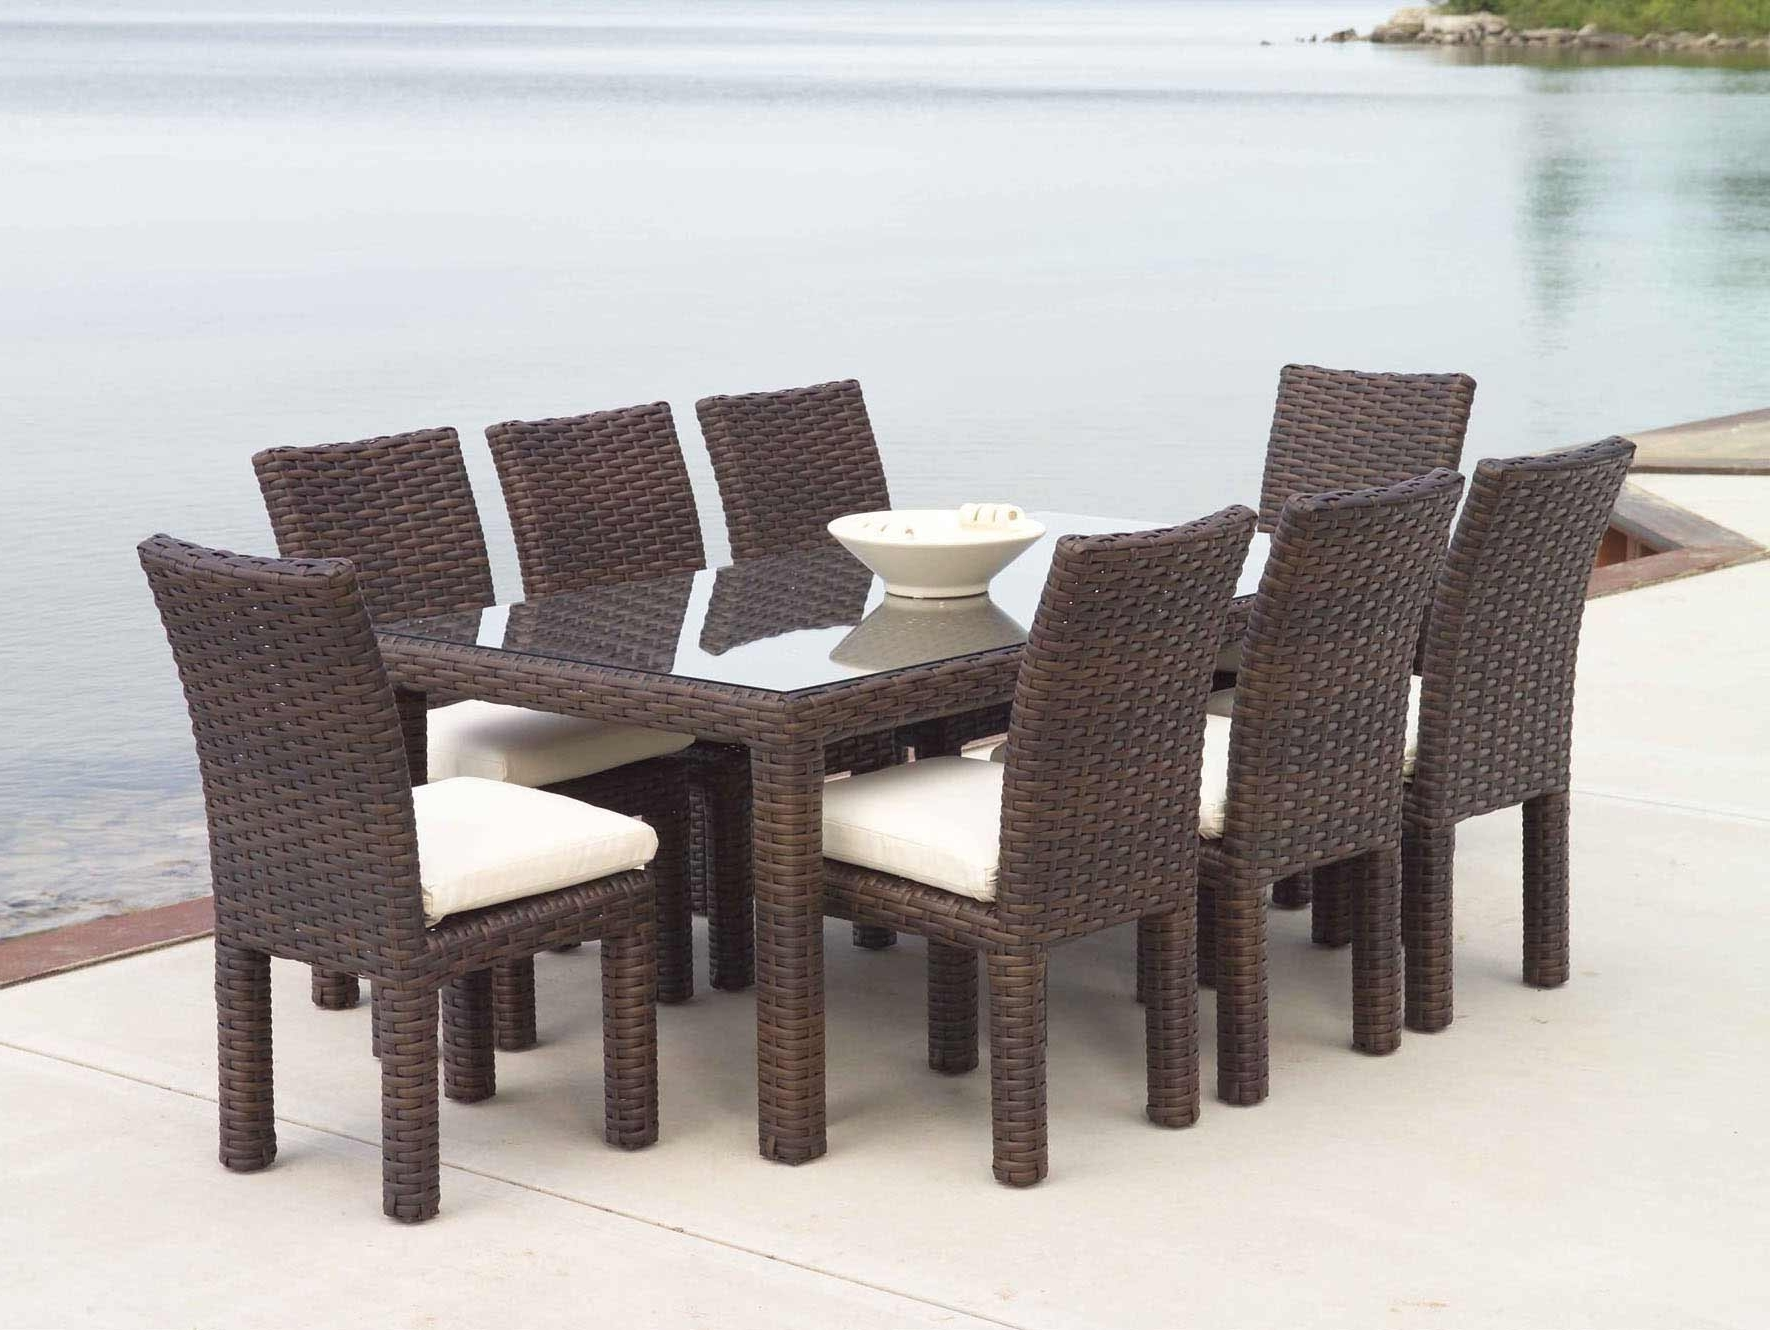 Wicker Patio Furniture (View 25 of 25)